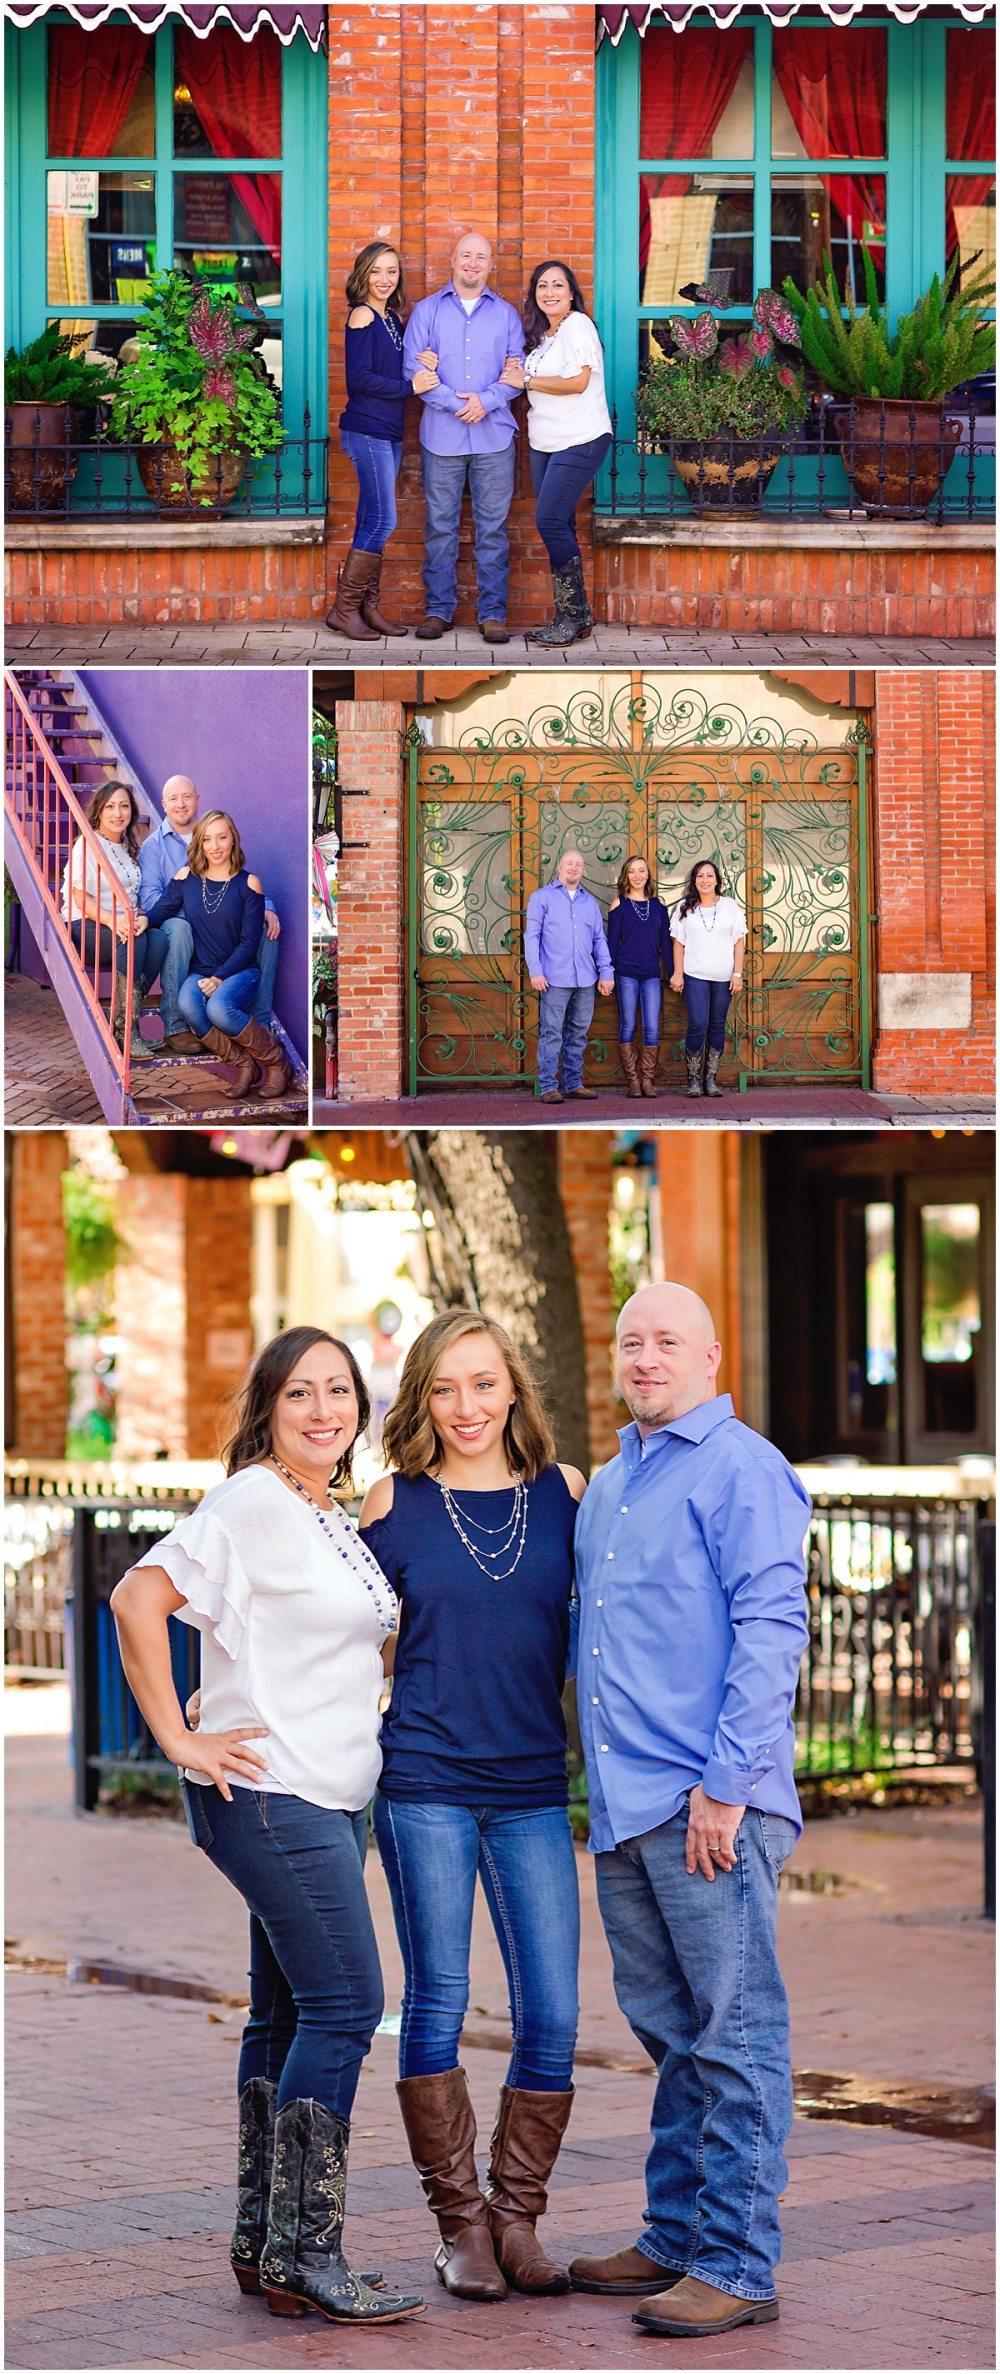 Family-Children-Maternity-Portraits-San-Antonio-Hill-Country-Texas-Carly-Barton-Photography_0071.jpg